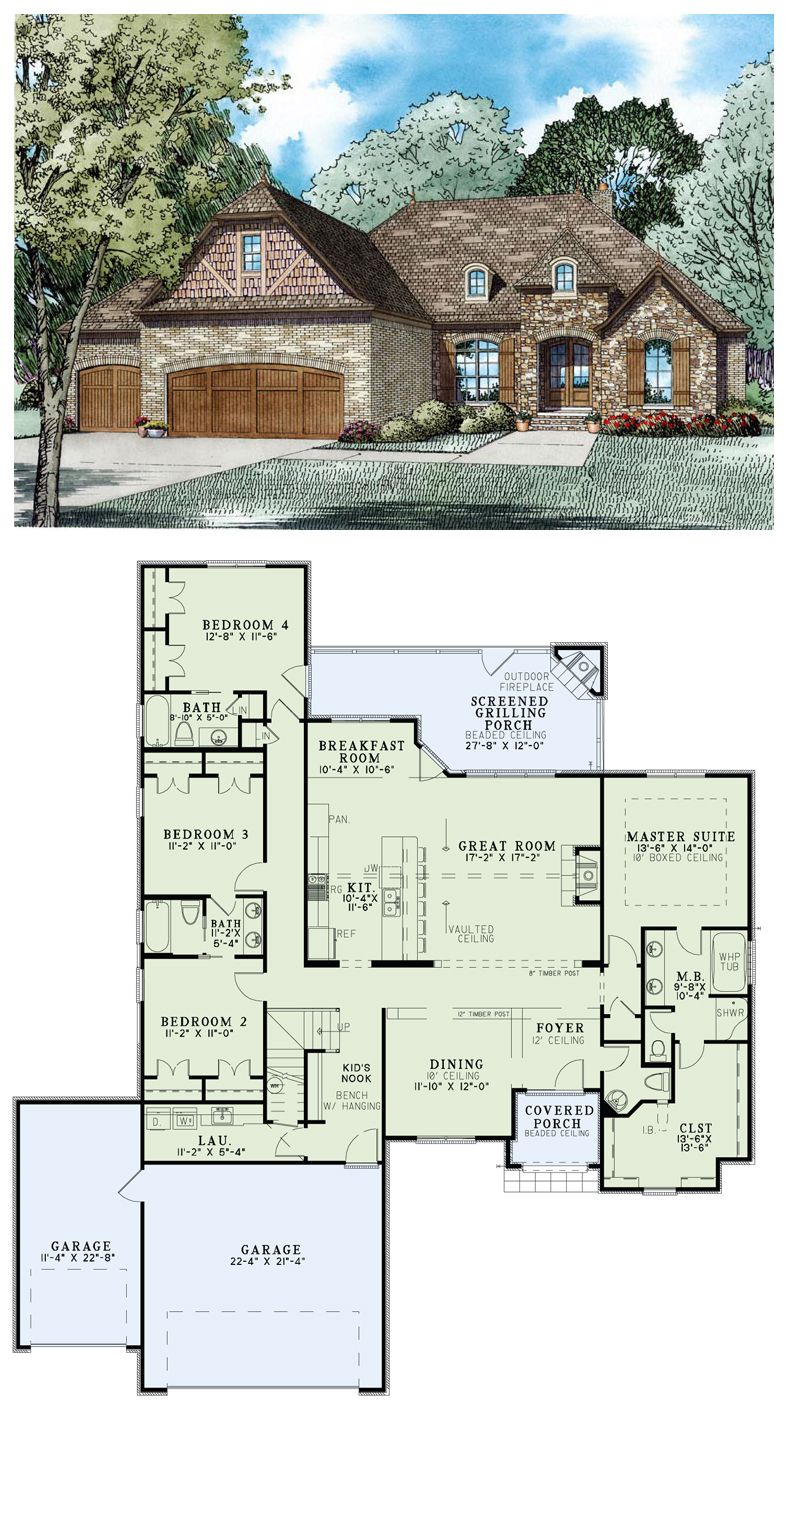 French country house plan 82236 total living area 2413 for Brick house floor plans